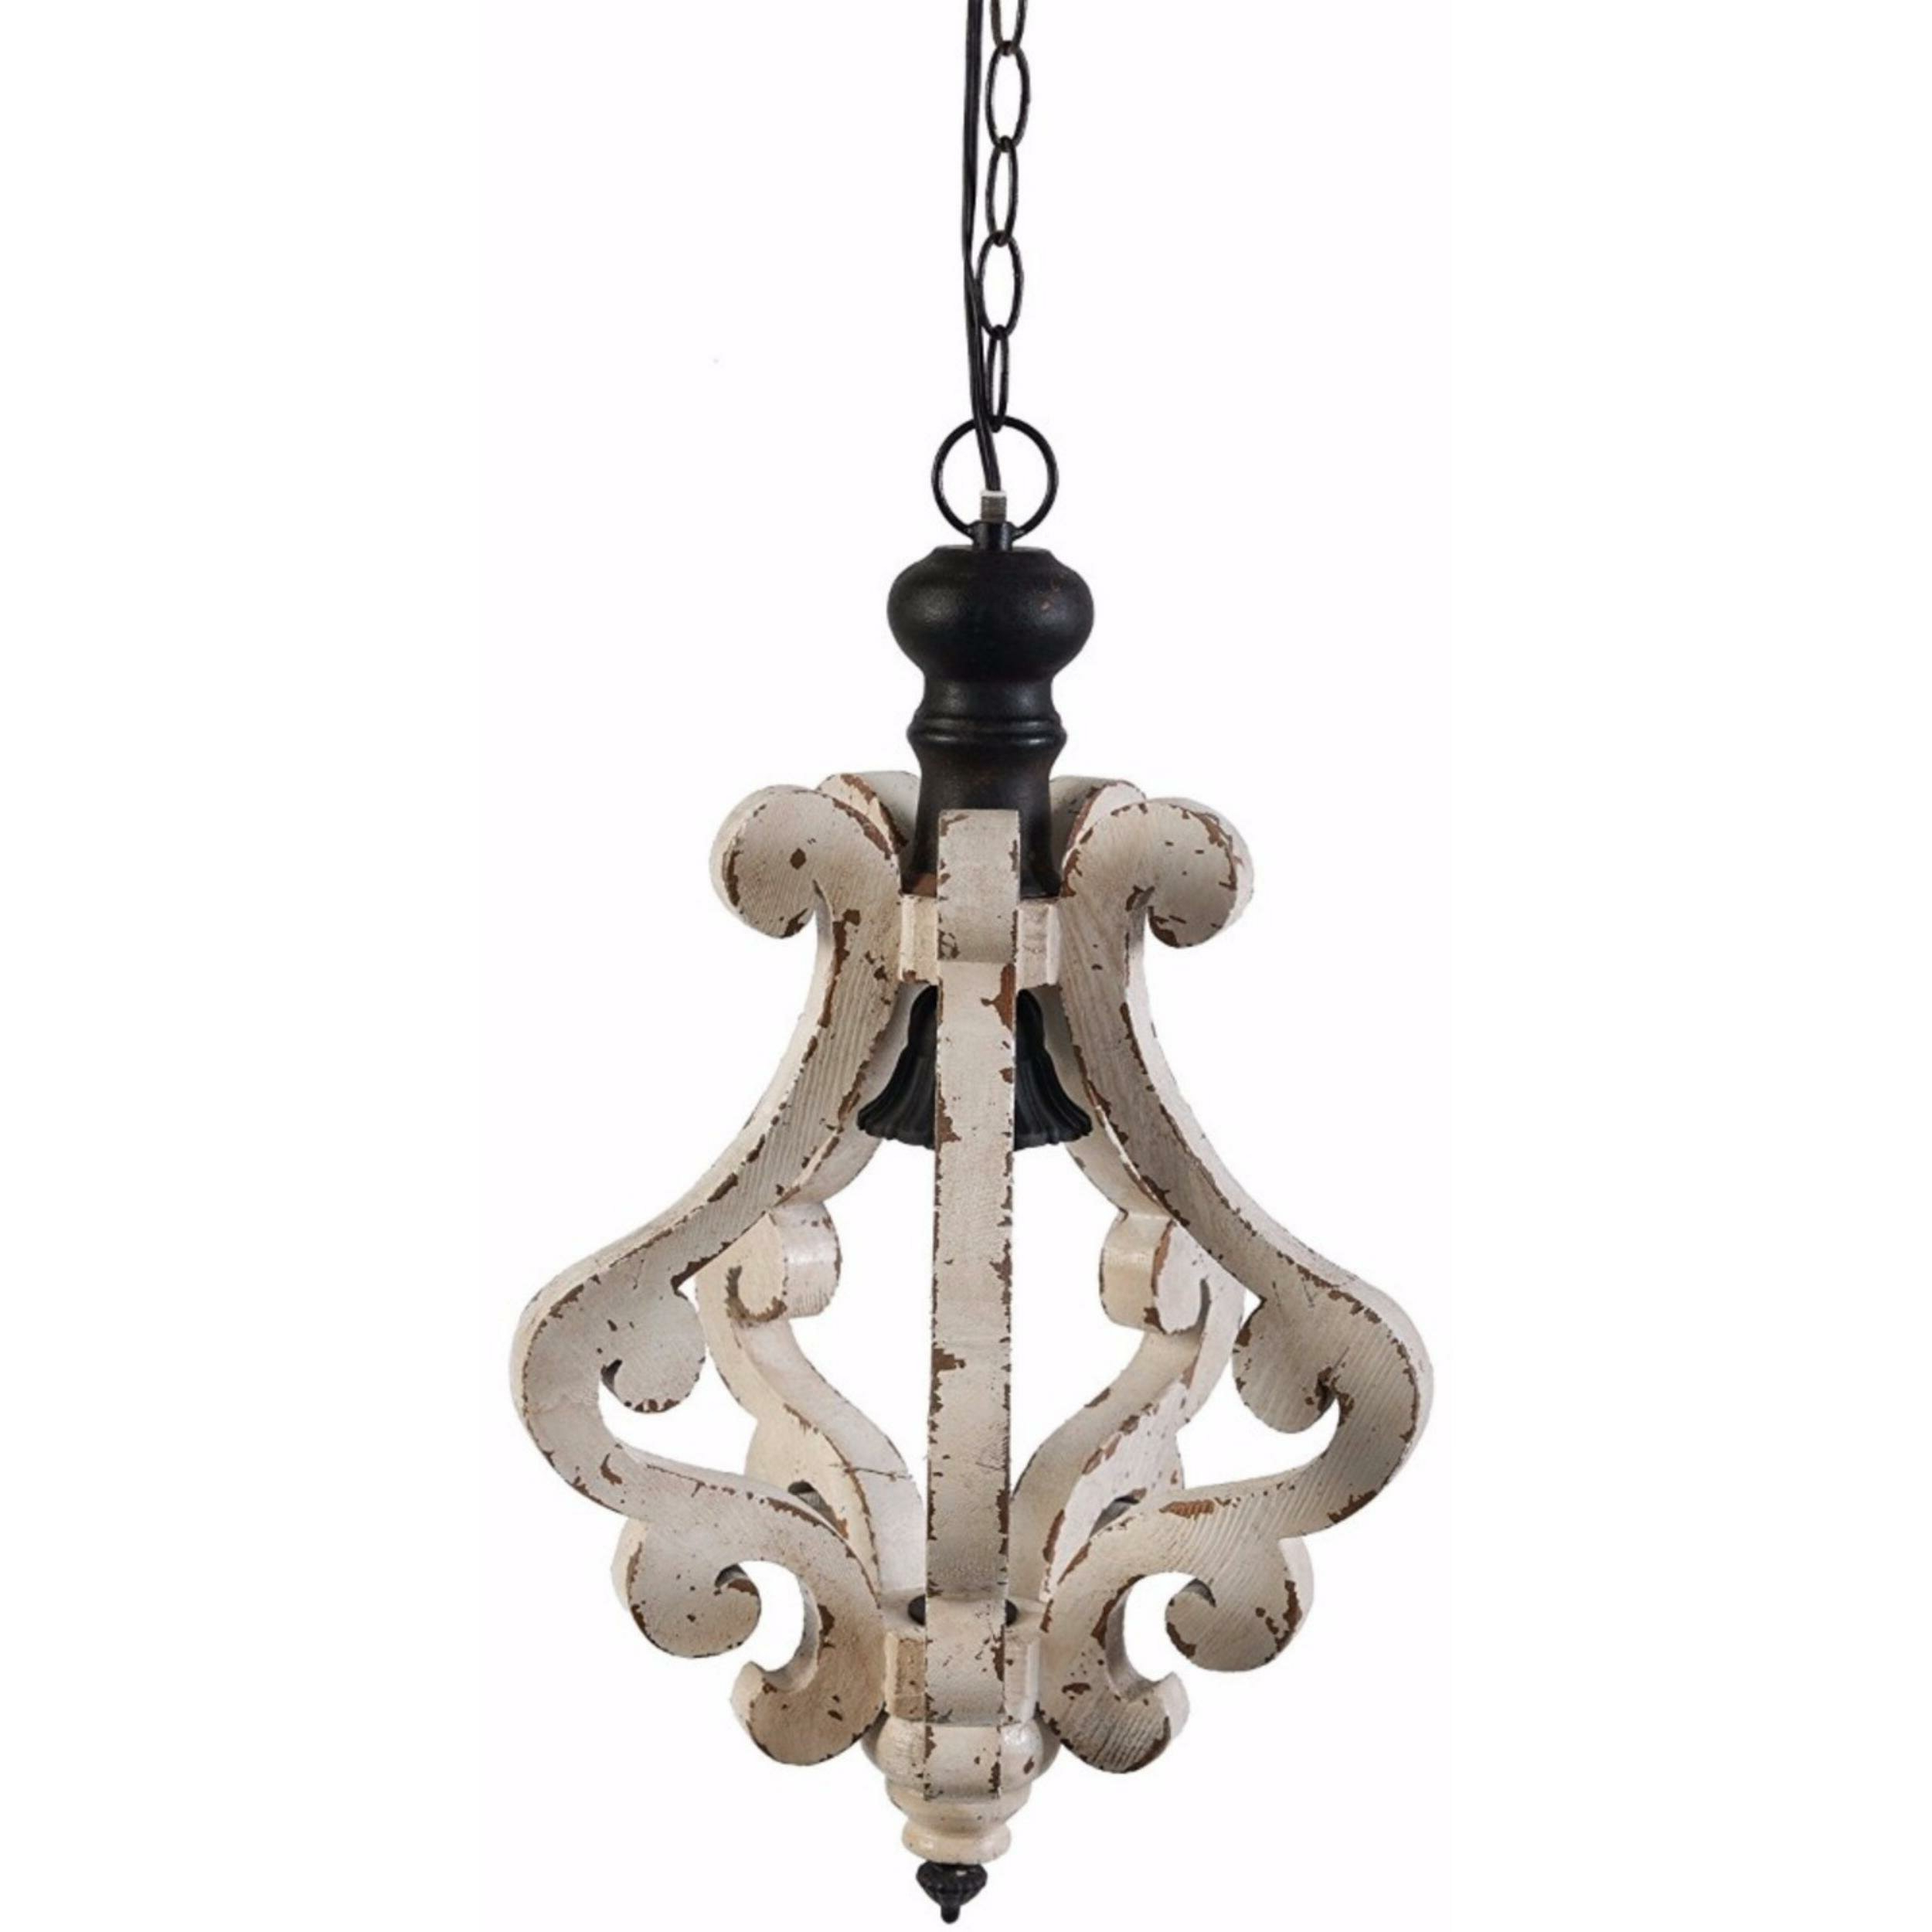 Grullon Scroll 1 Light Single Bell Pendants Throughout Best And Newest Latonia Wooden 1 Light Single Geometric Pendant (View 7 of 25)